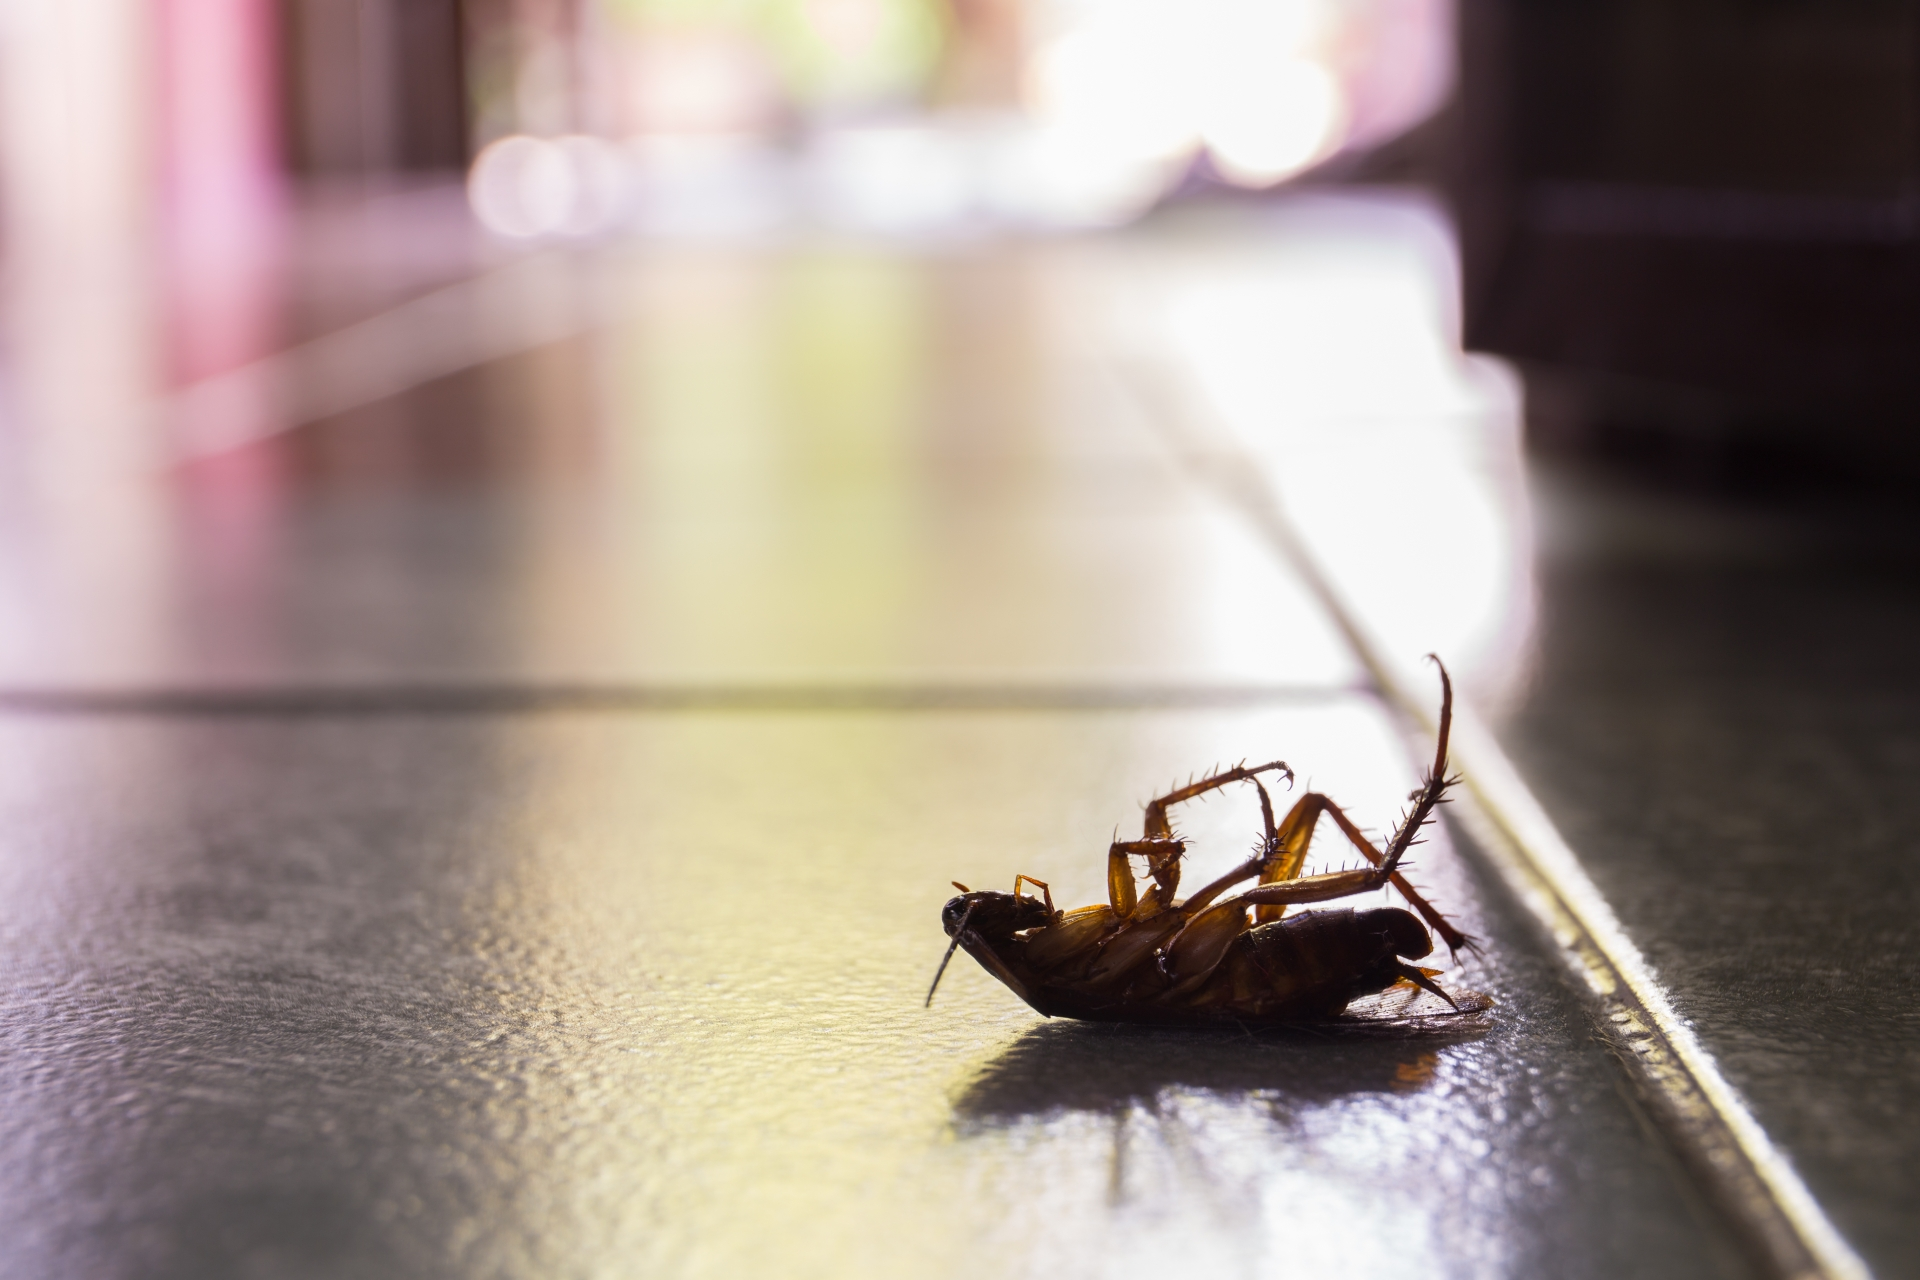 Cockroach Control, Pest Control in Ponders End, Enfield Wash, EN3. Call Now 020 8166 9746